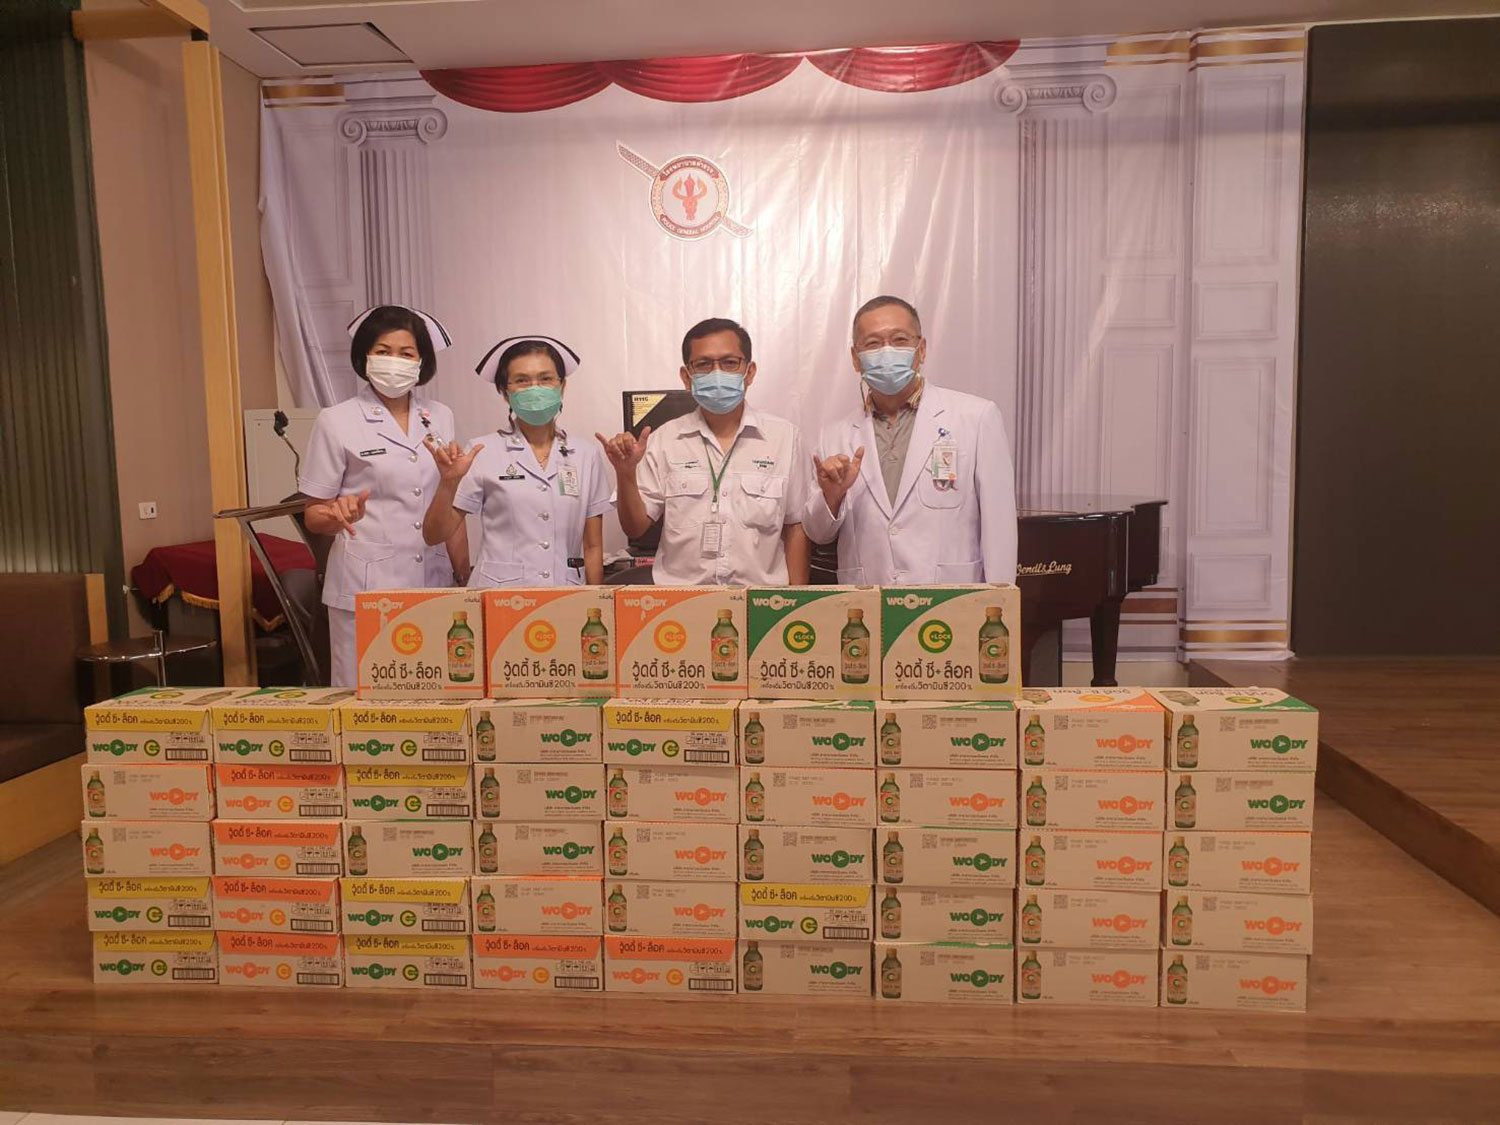 Carabao Group supports the fight against COVID-19 in Thailand with donation for medical and frontline personnel